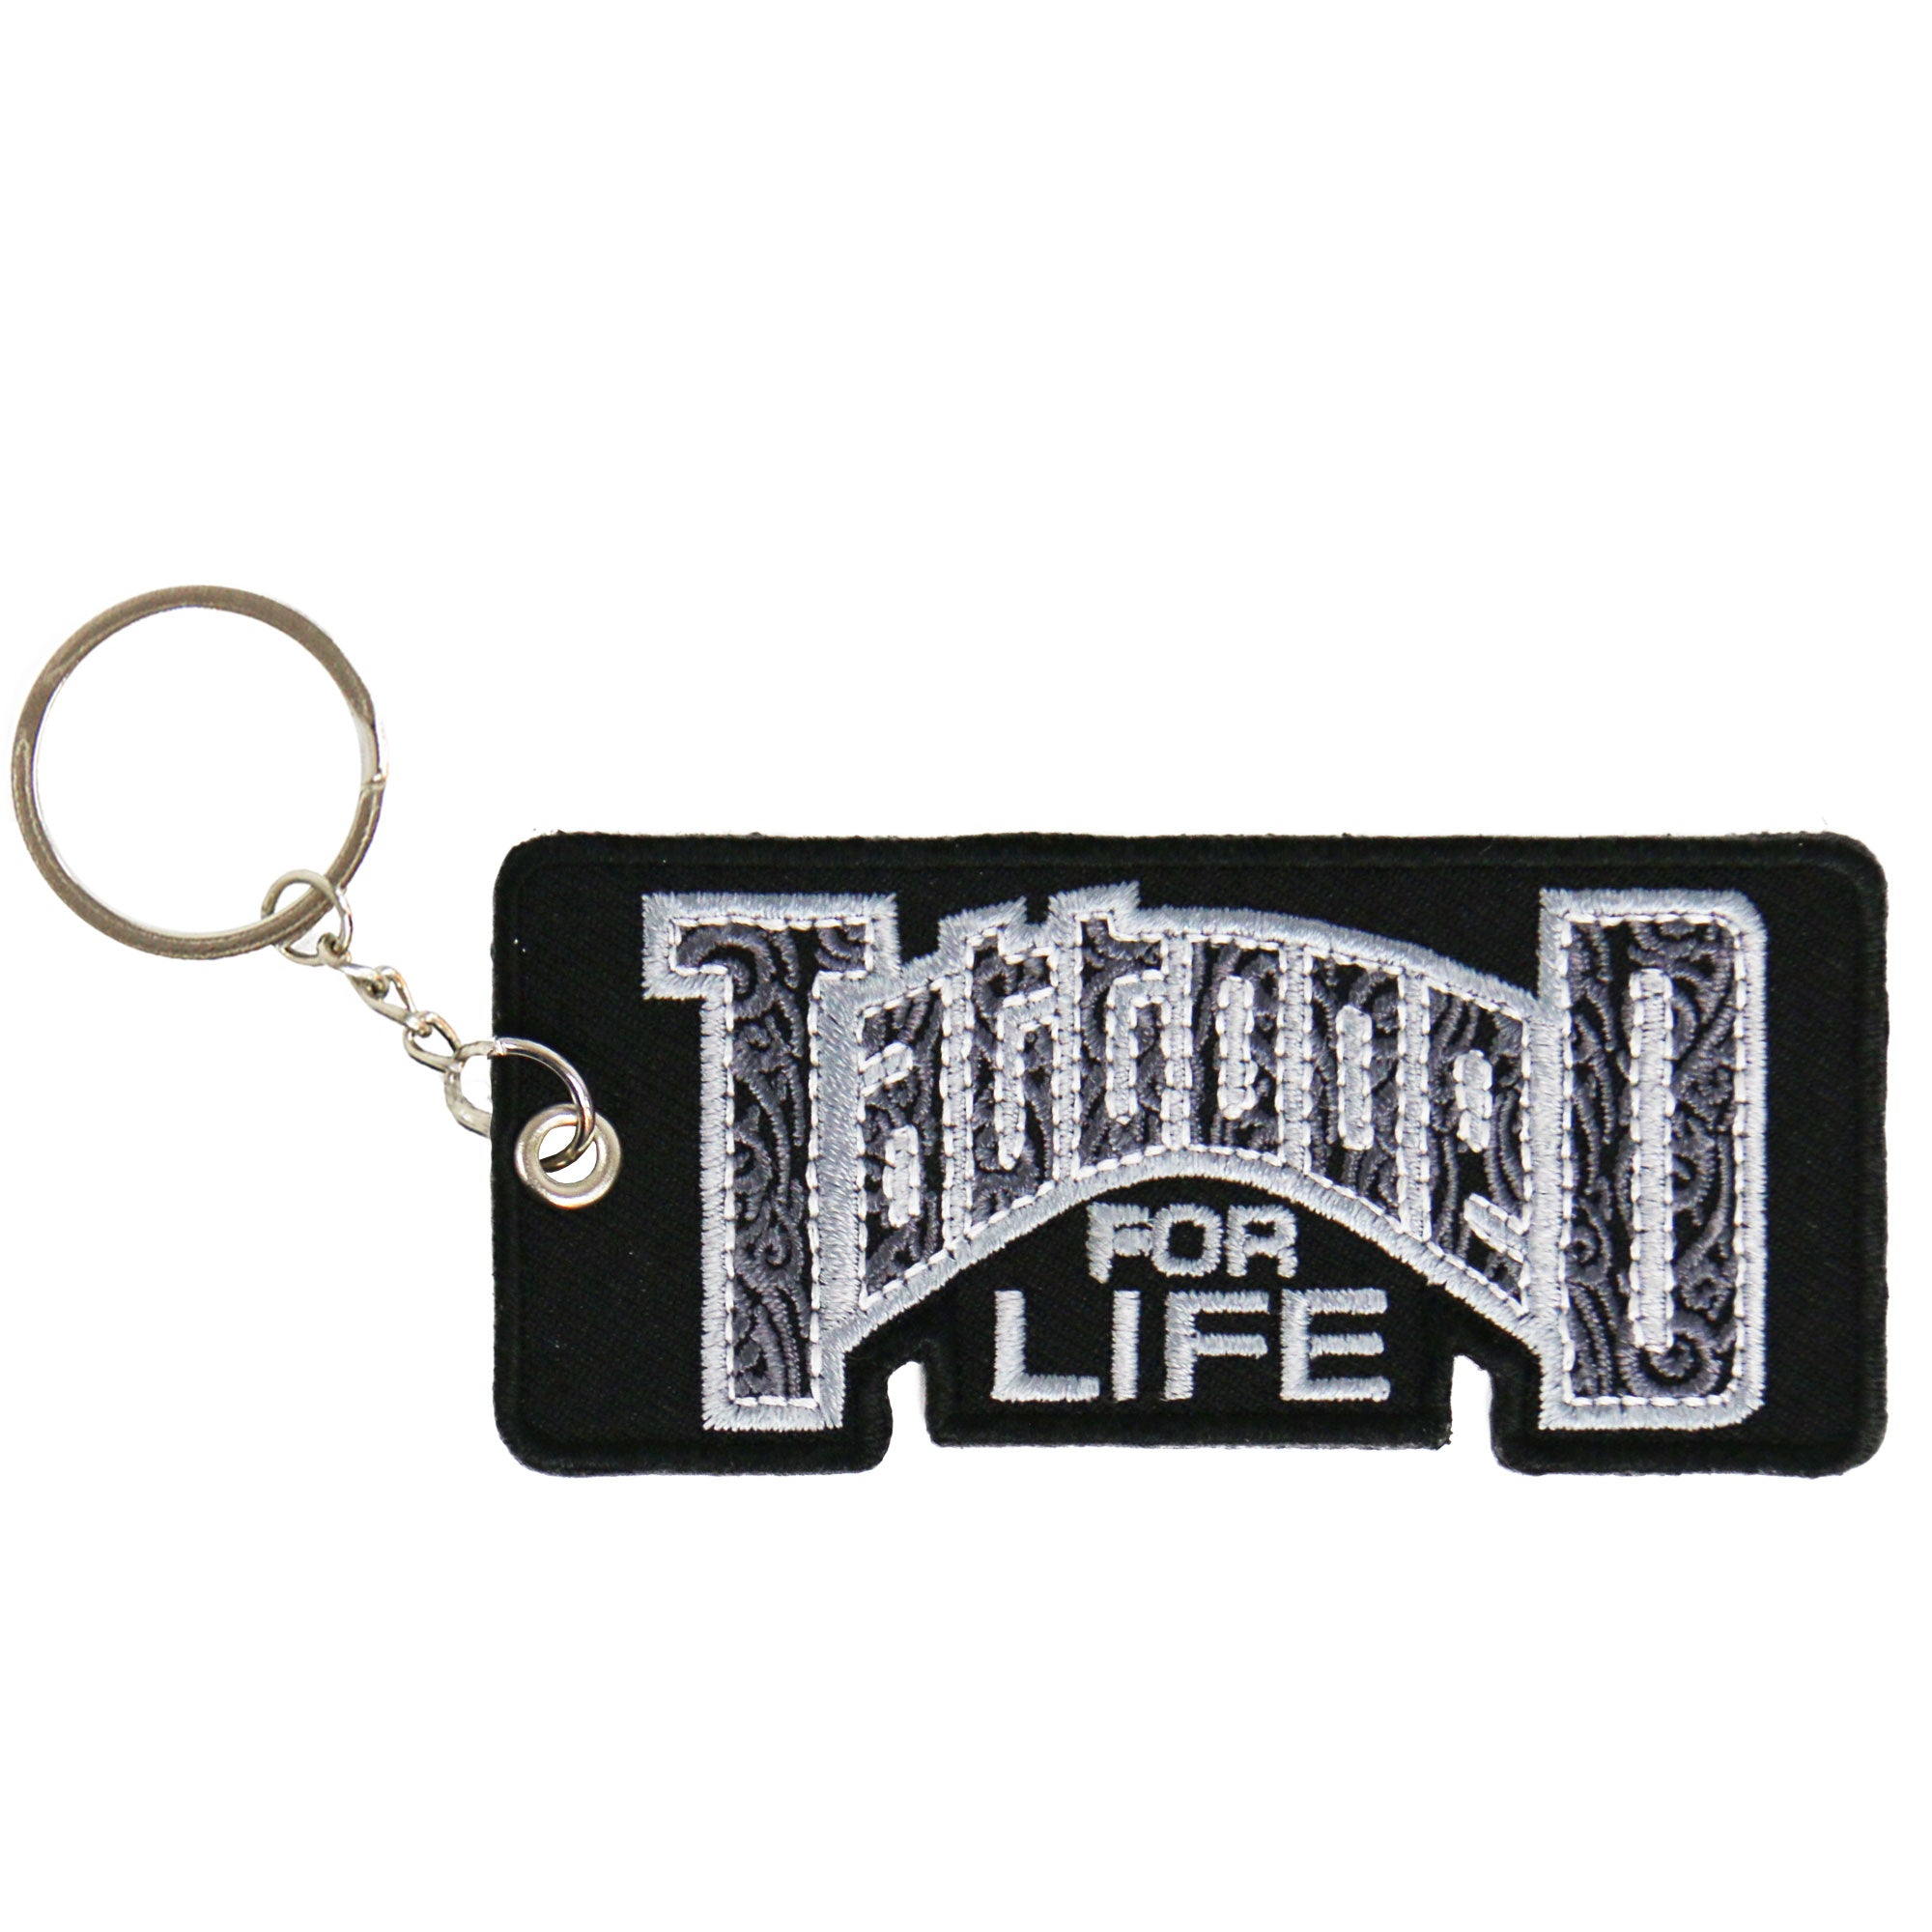 Hot Leathers Tattooed For Life Embroidered Key Chain